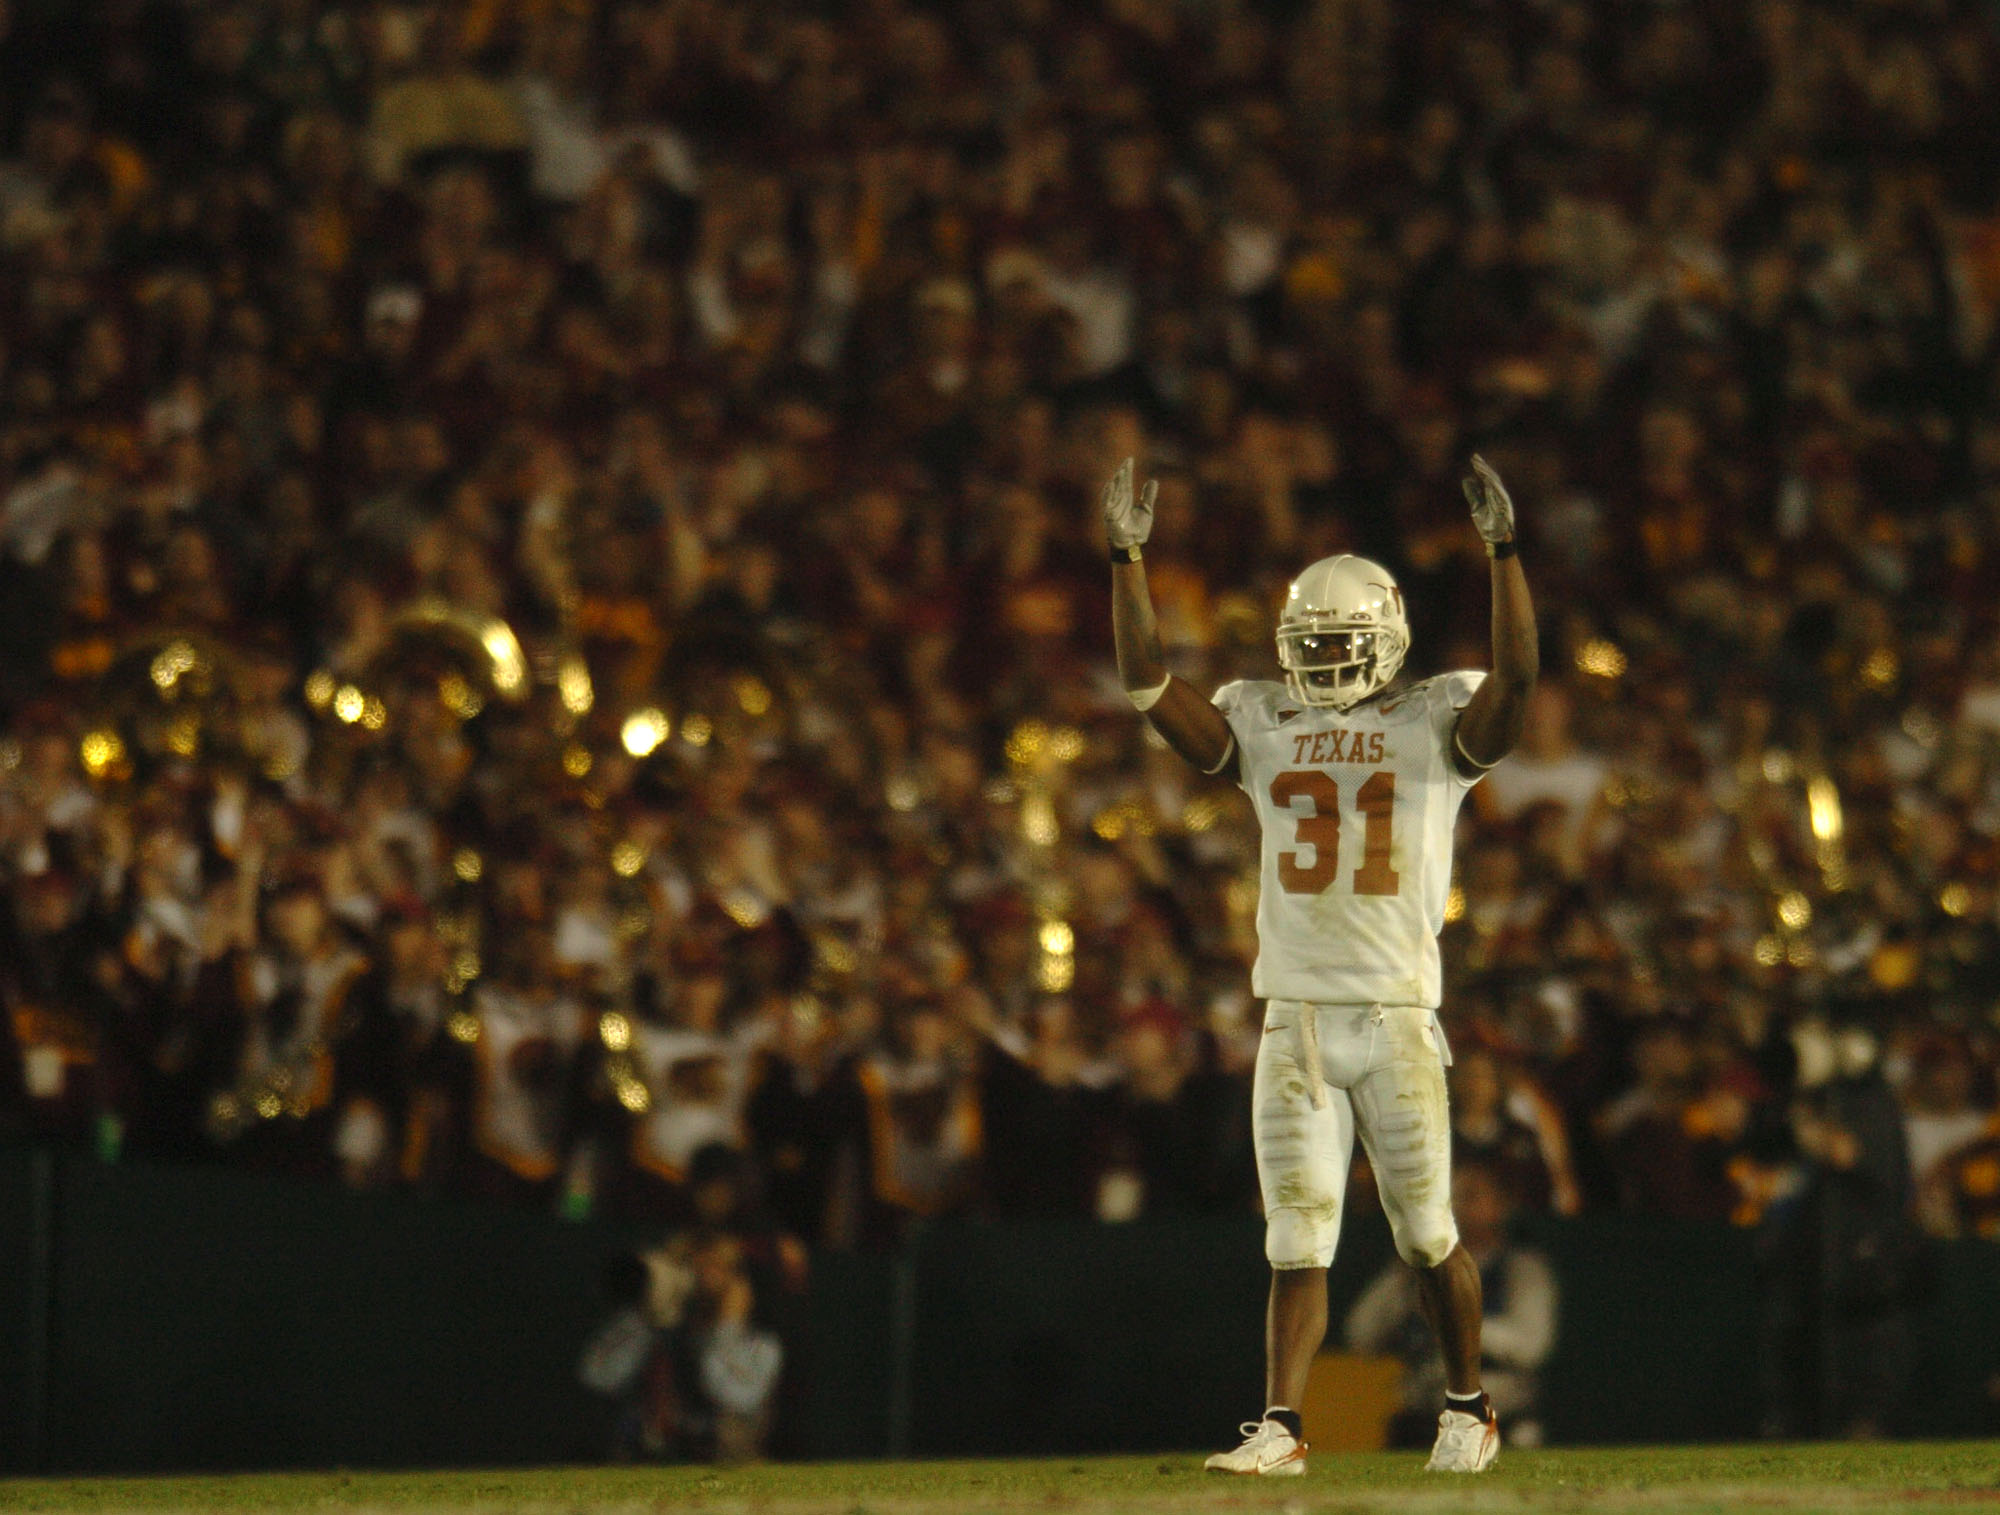 Texas ranked No. 8 in all-time Associated Press football rankings ...